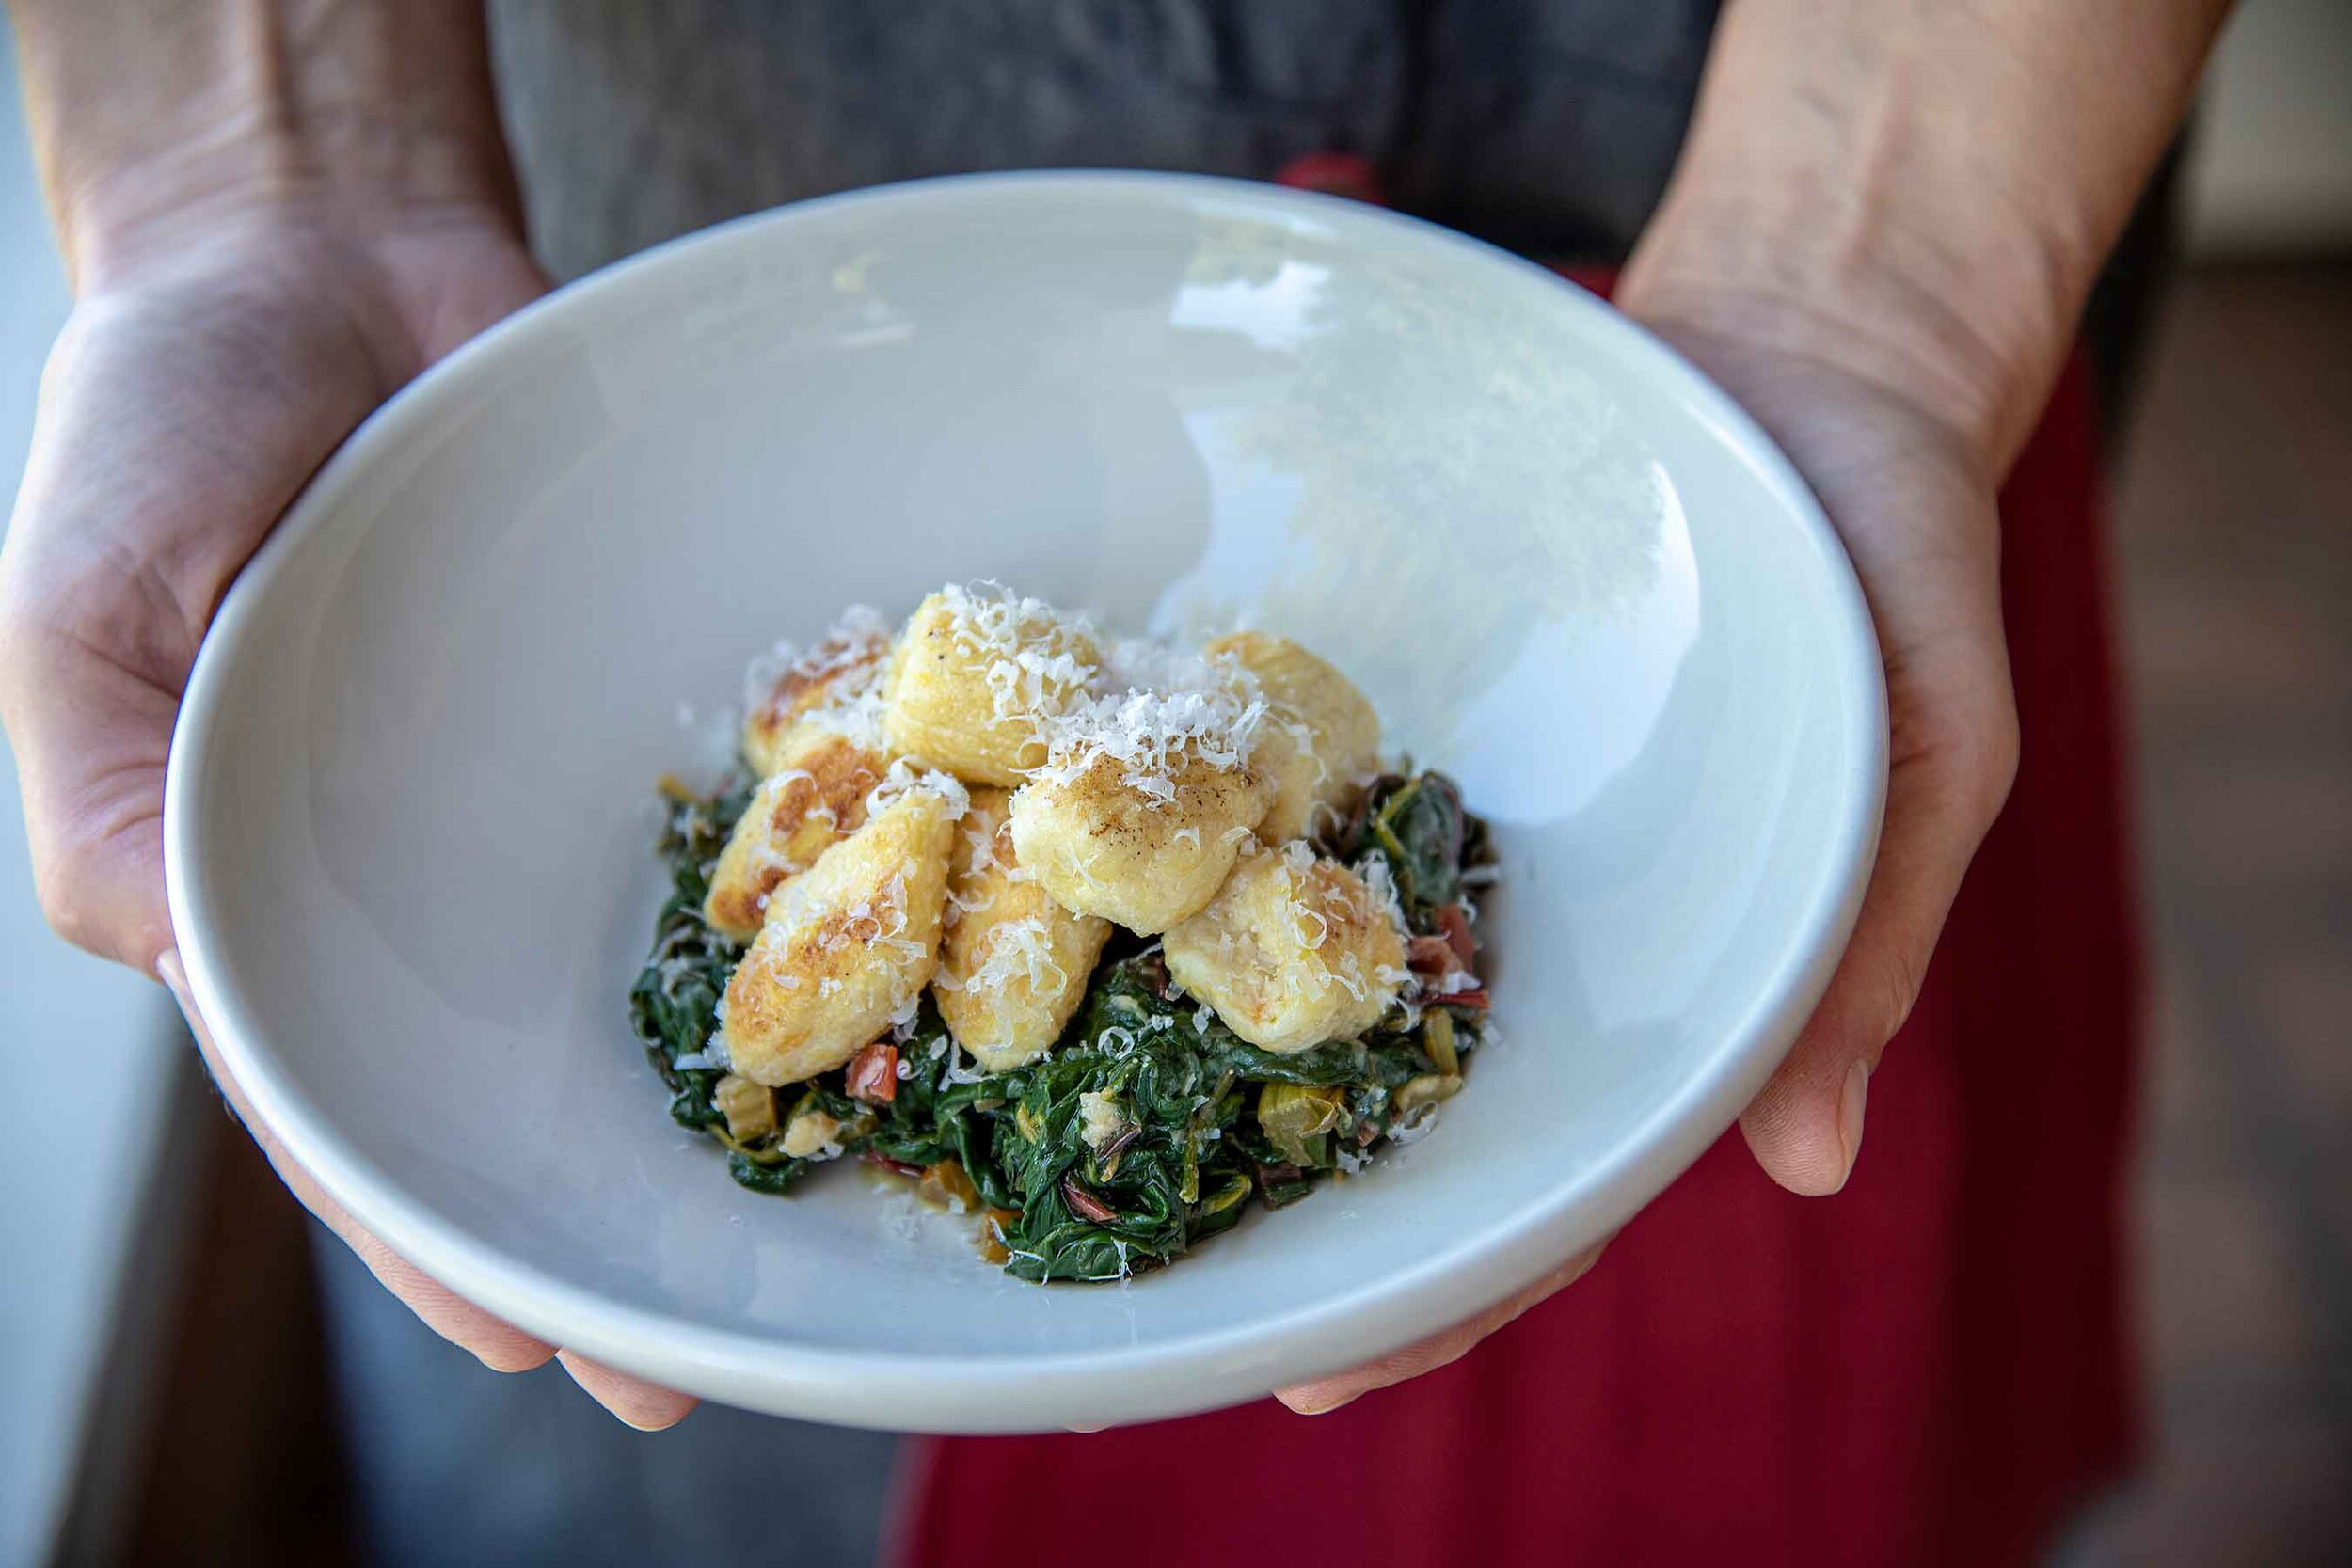 What welcomes Fall better than browned butternut squash and ricotta gnocchi atop a bed of sautéed rainbow chard?